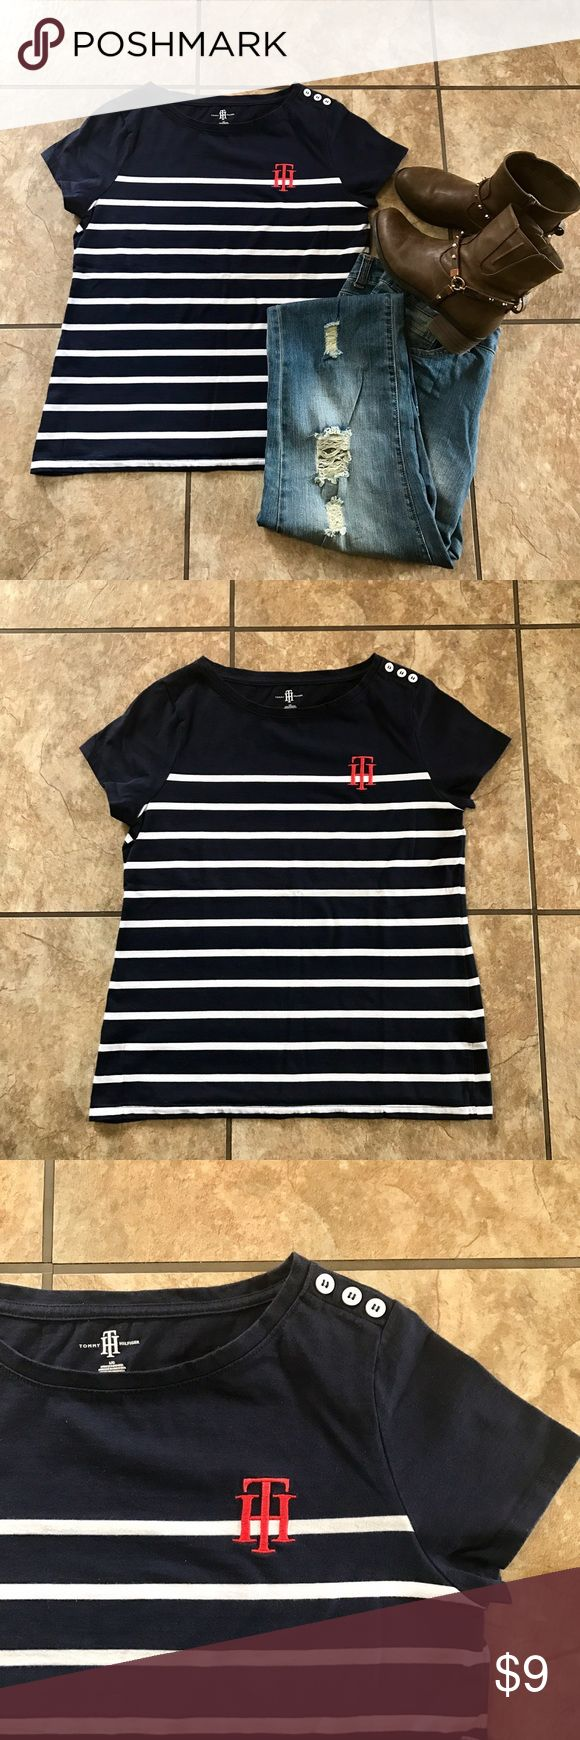 Tommy Hilfiger Nautical Tee Tommy Hilfiger Nautical Tee, size large. Excellent used condition. Tommy Hilfiger Tops Tees - Short Sleeve